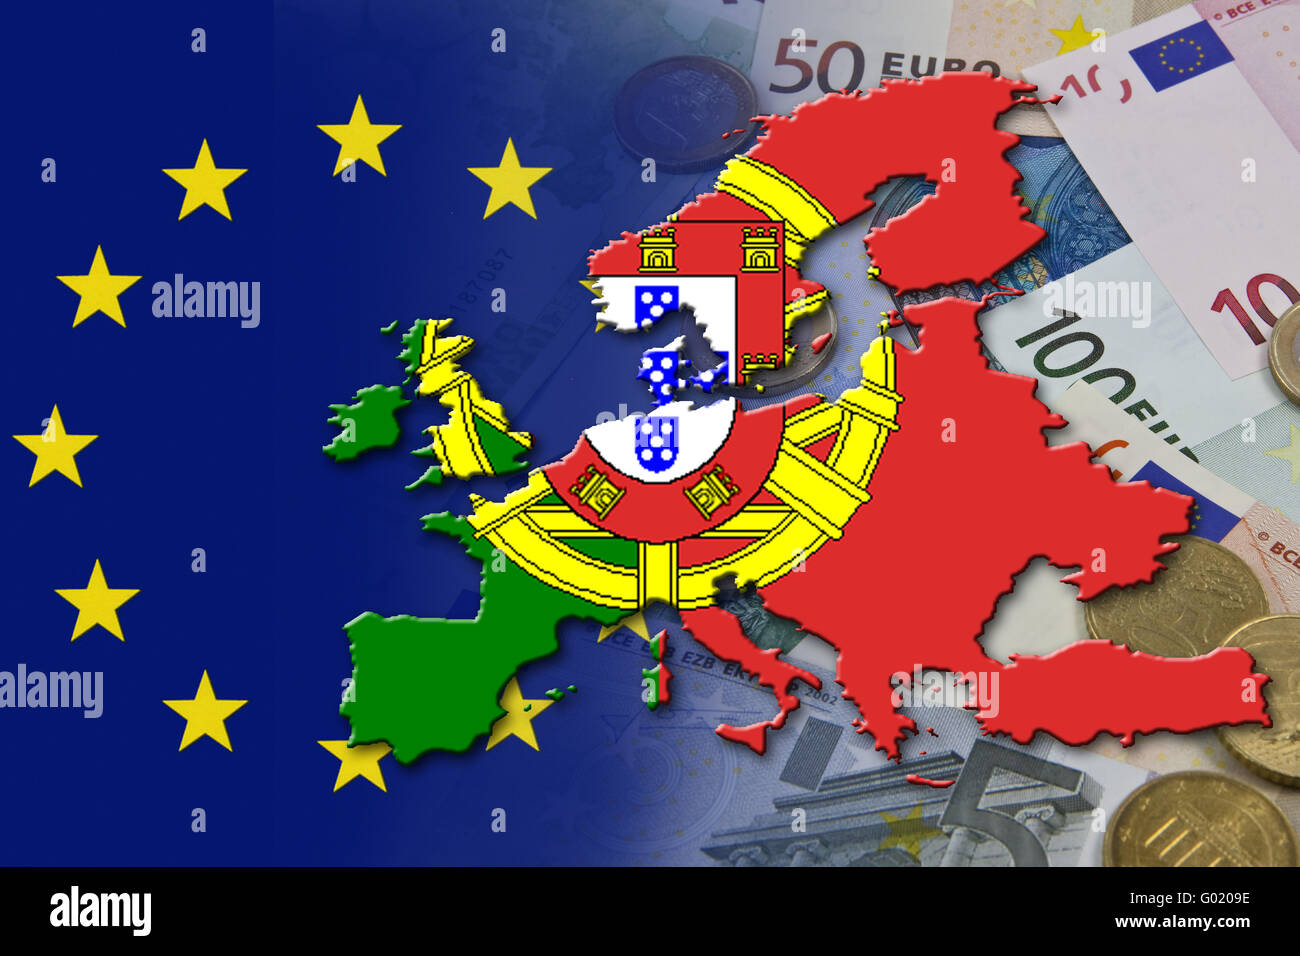 Financial and economic crisis in the euro area in the country Portugal Europe - Stock Image